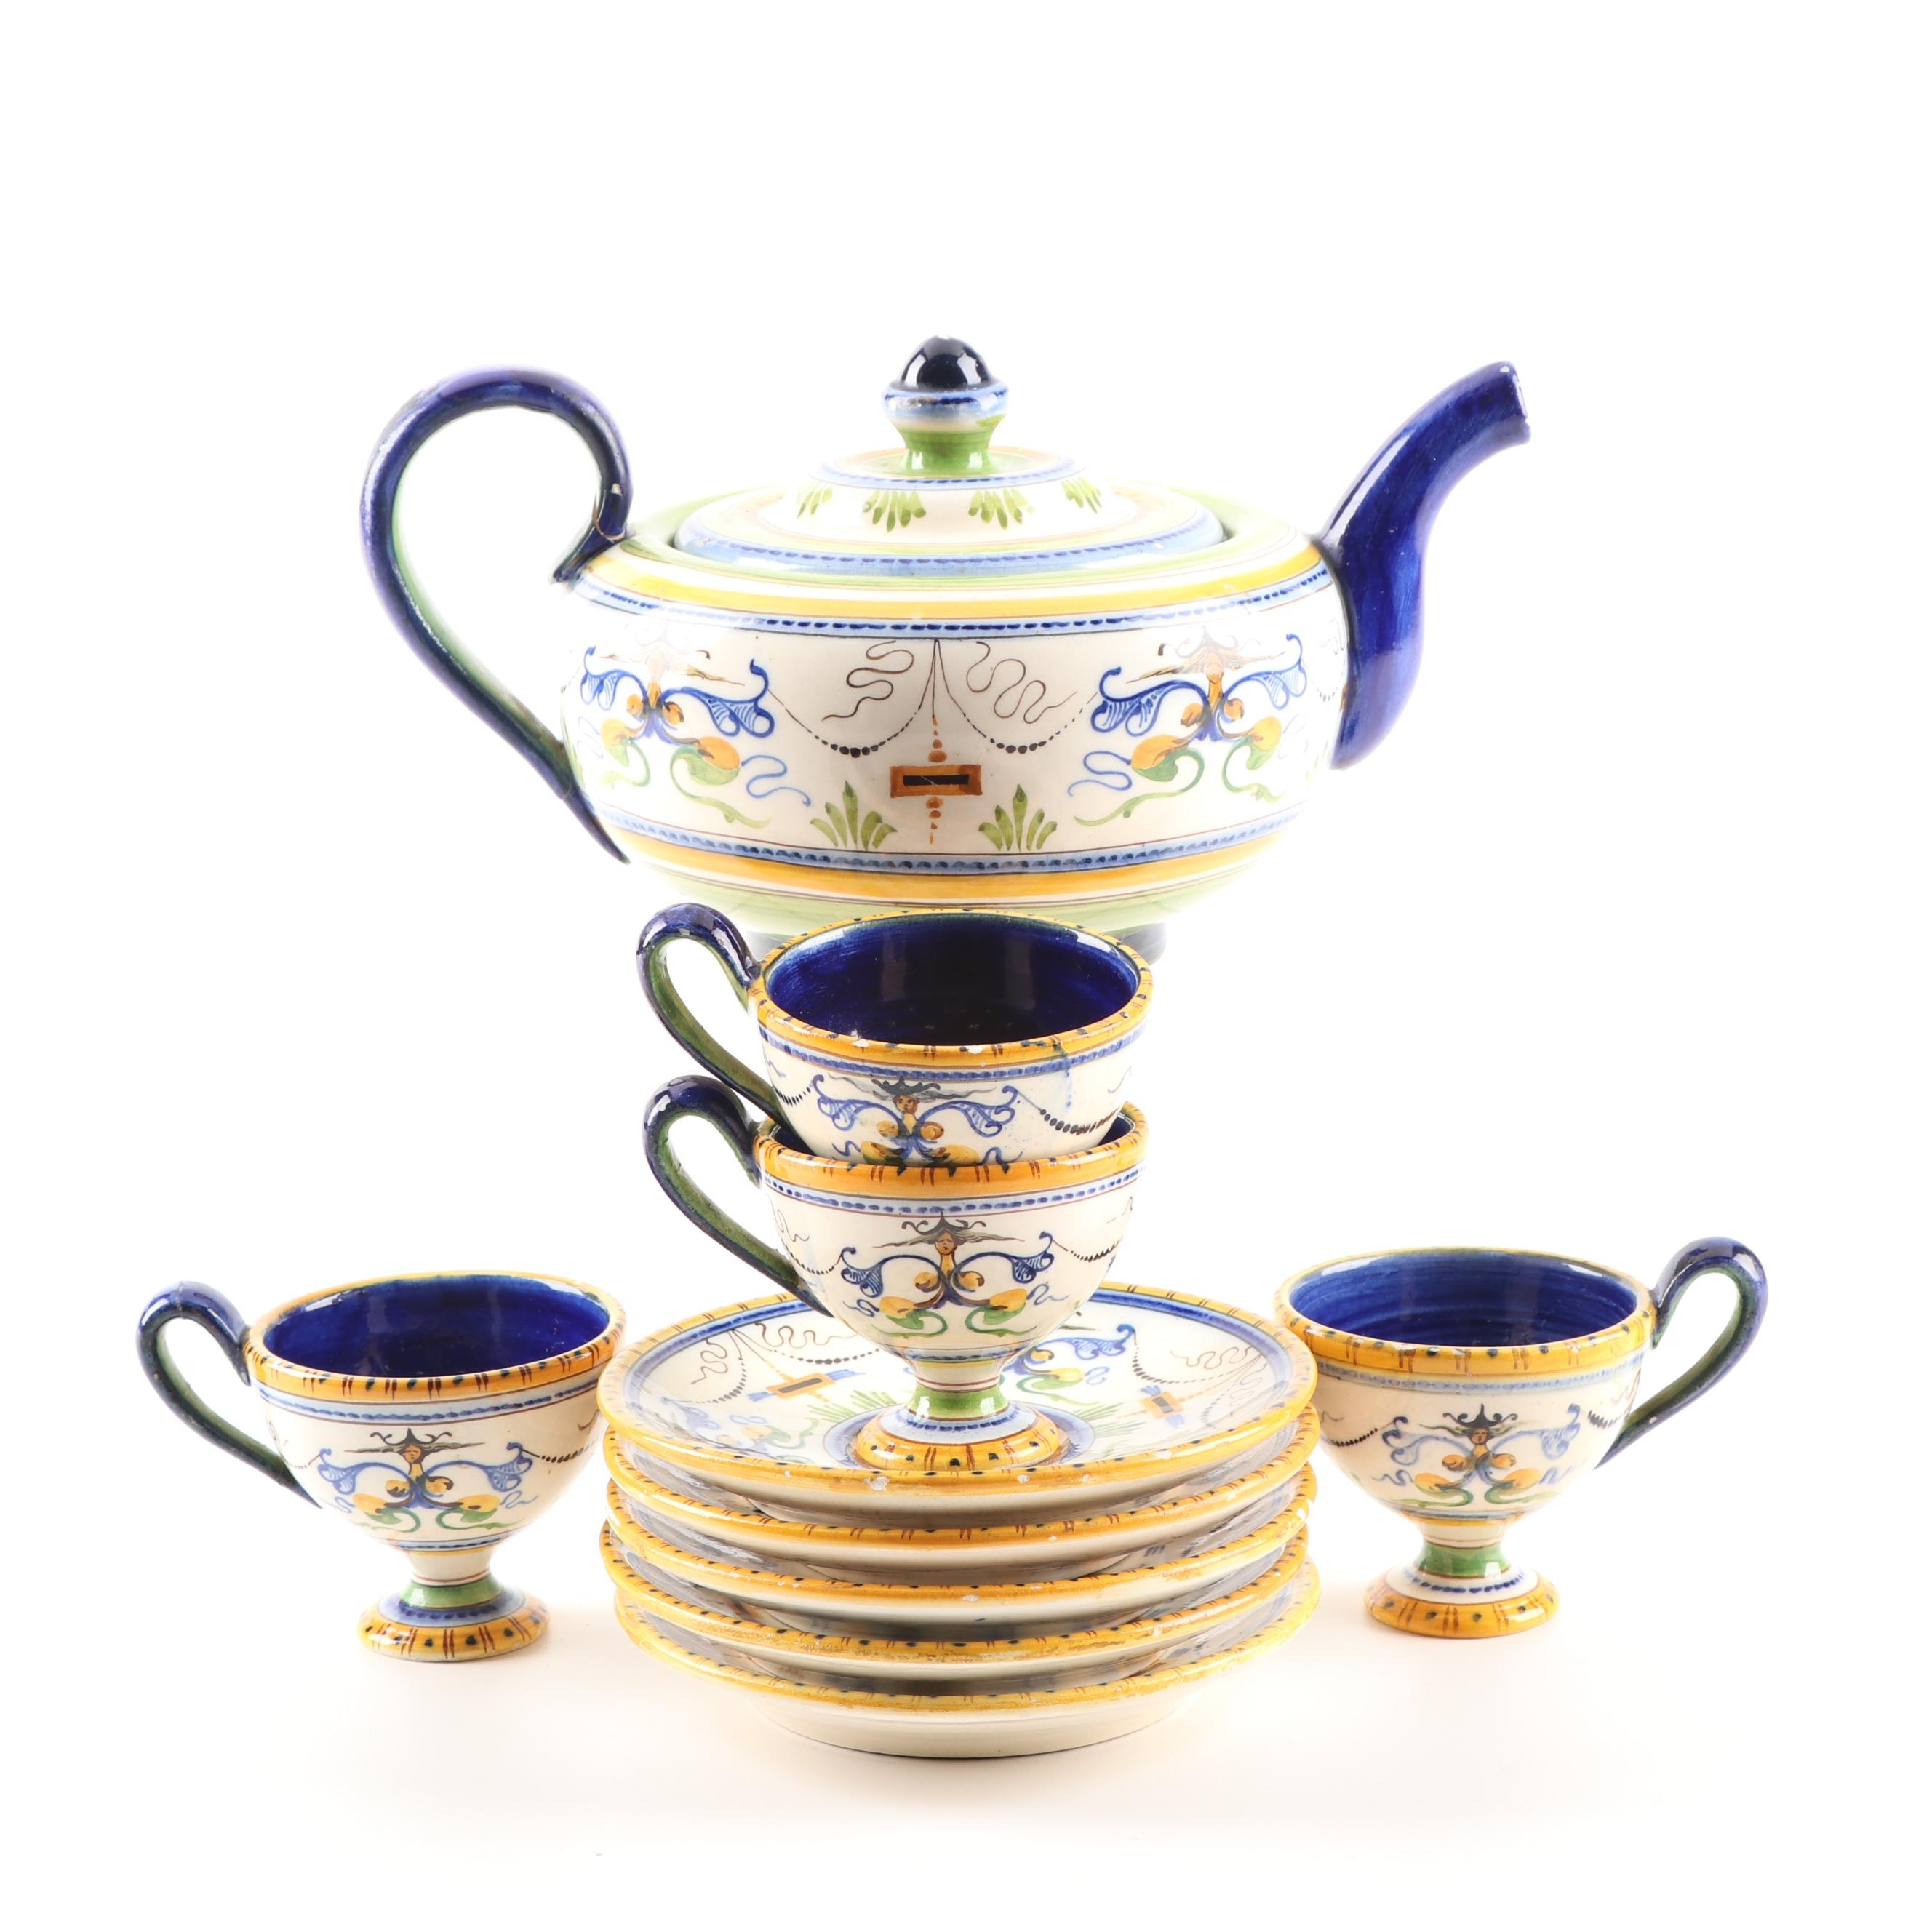 Hand-Painted Italian Faience Teapot, Footed Cups, and Saucers